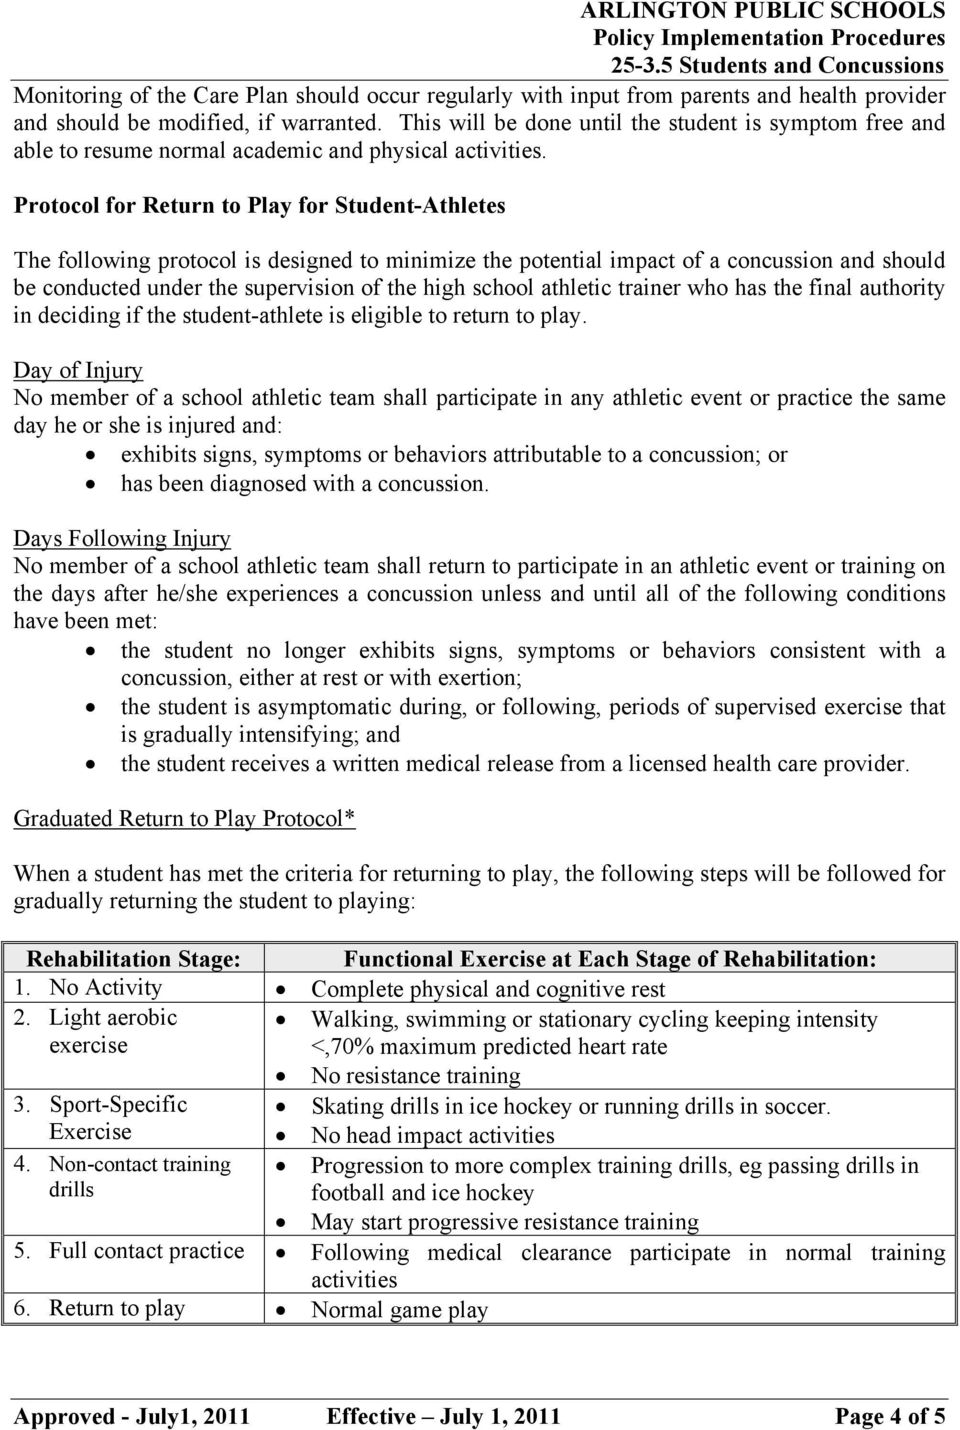 Protocol for Return to Play for Student-Athletes The following protocol is designed to minimize the potential impact of a concussion and should be conducted under the supervision of the high school